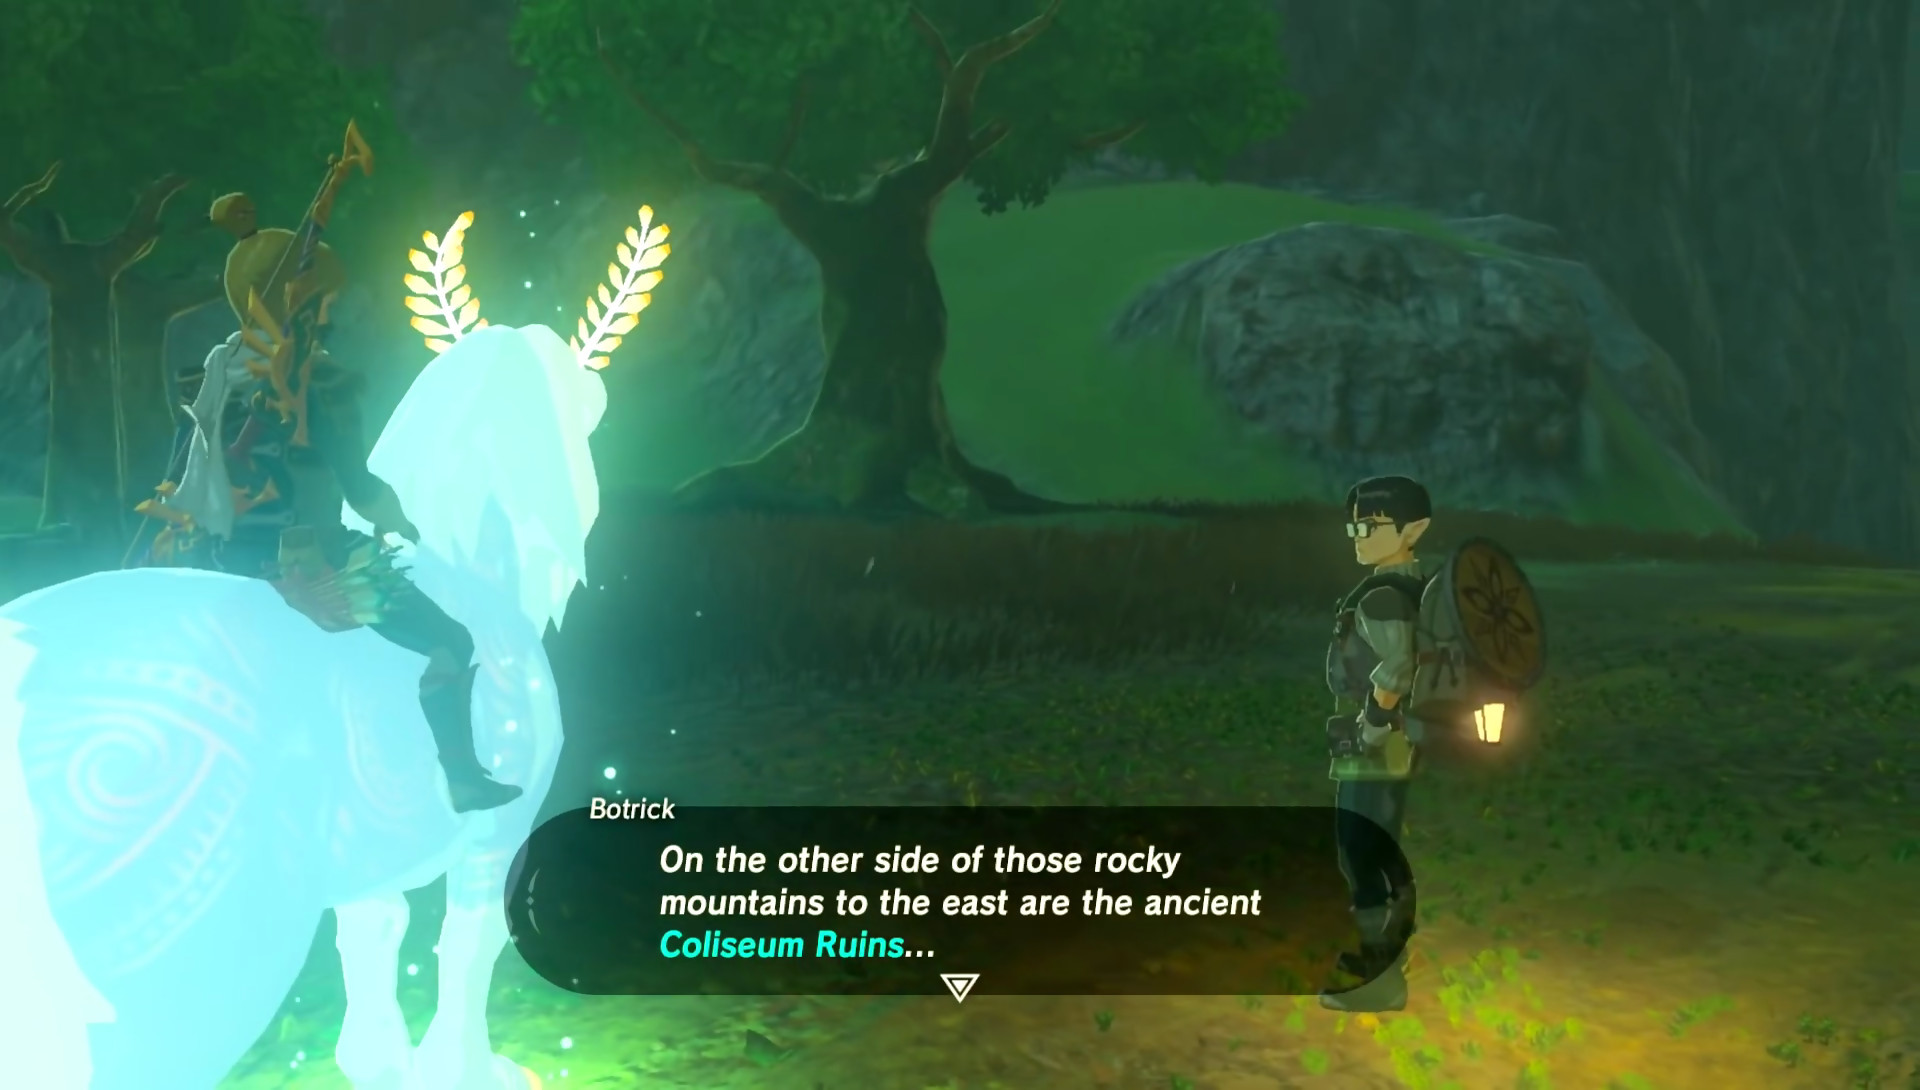 Anecdote du jeu Breath of the Wild  - Les hommages à Iwata dans Breath of